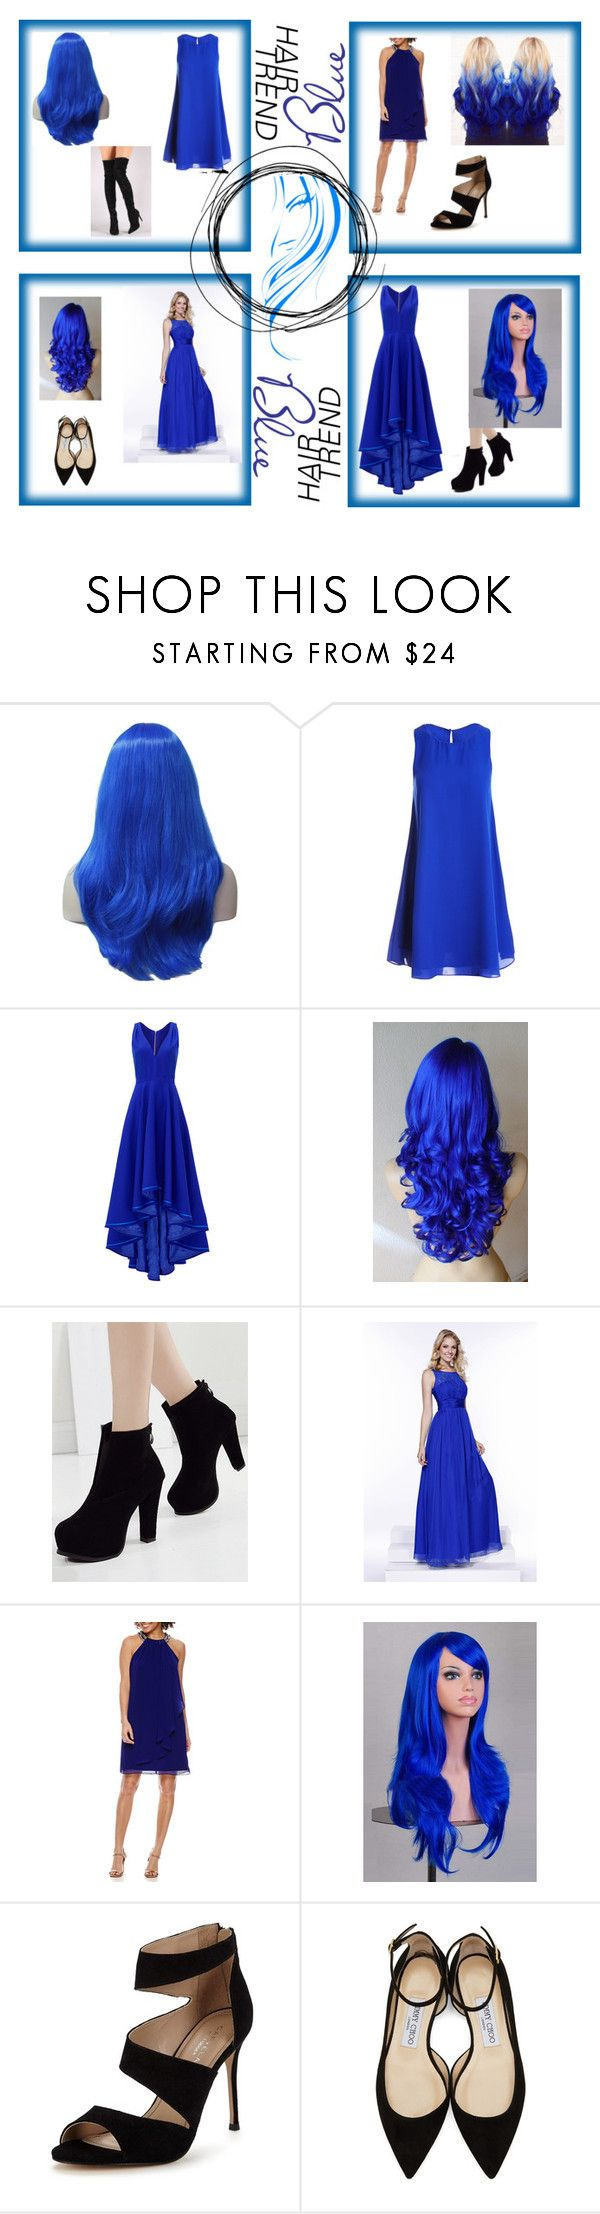 """""""#Blue Hair Trend"""" by jacqueline-w ❤ liked on Polyvore featuring beauty, Sans Souci, Allison Parris, SCARLETT, Carvela, Jimmy Choo and Liliana"""